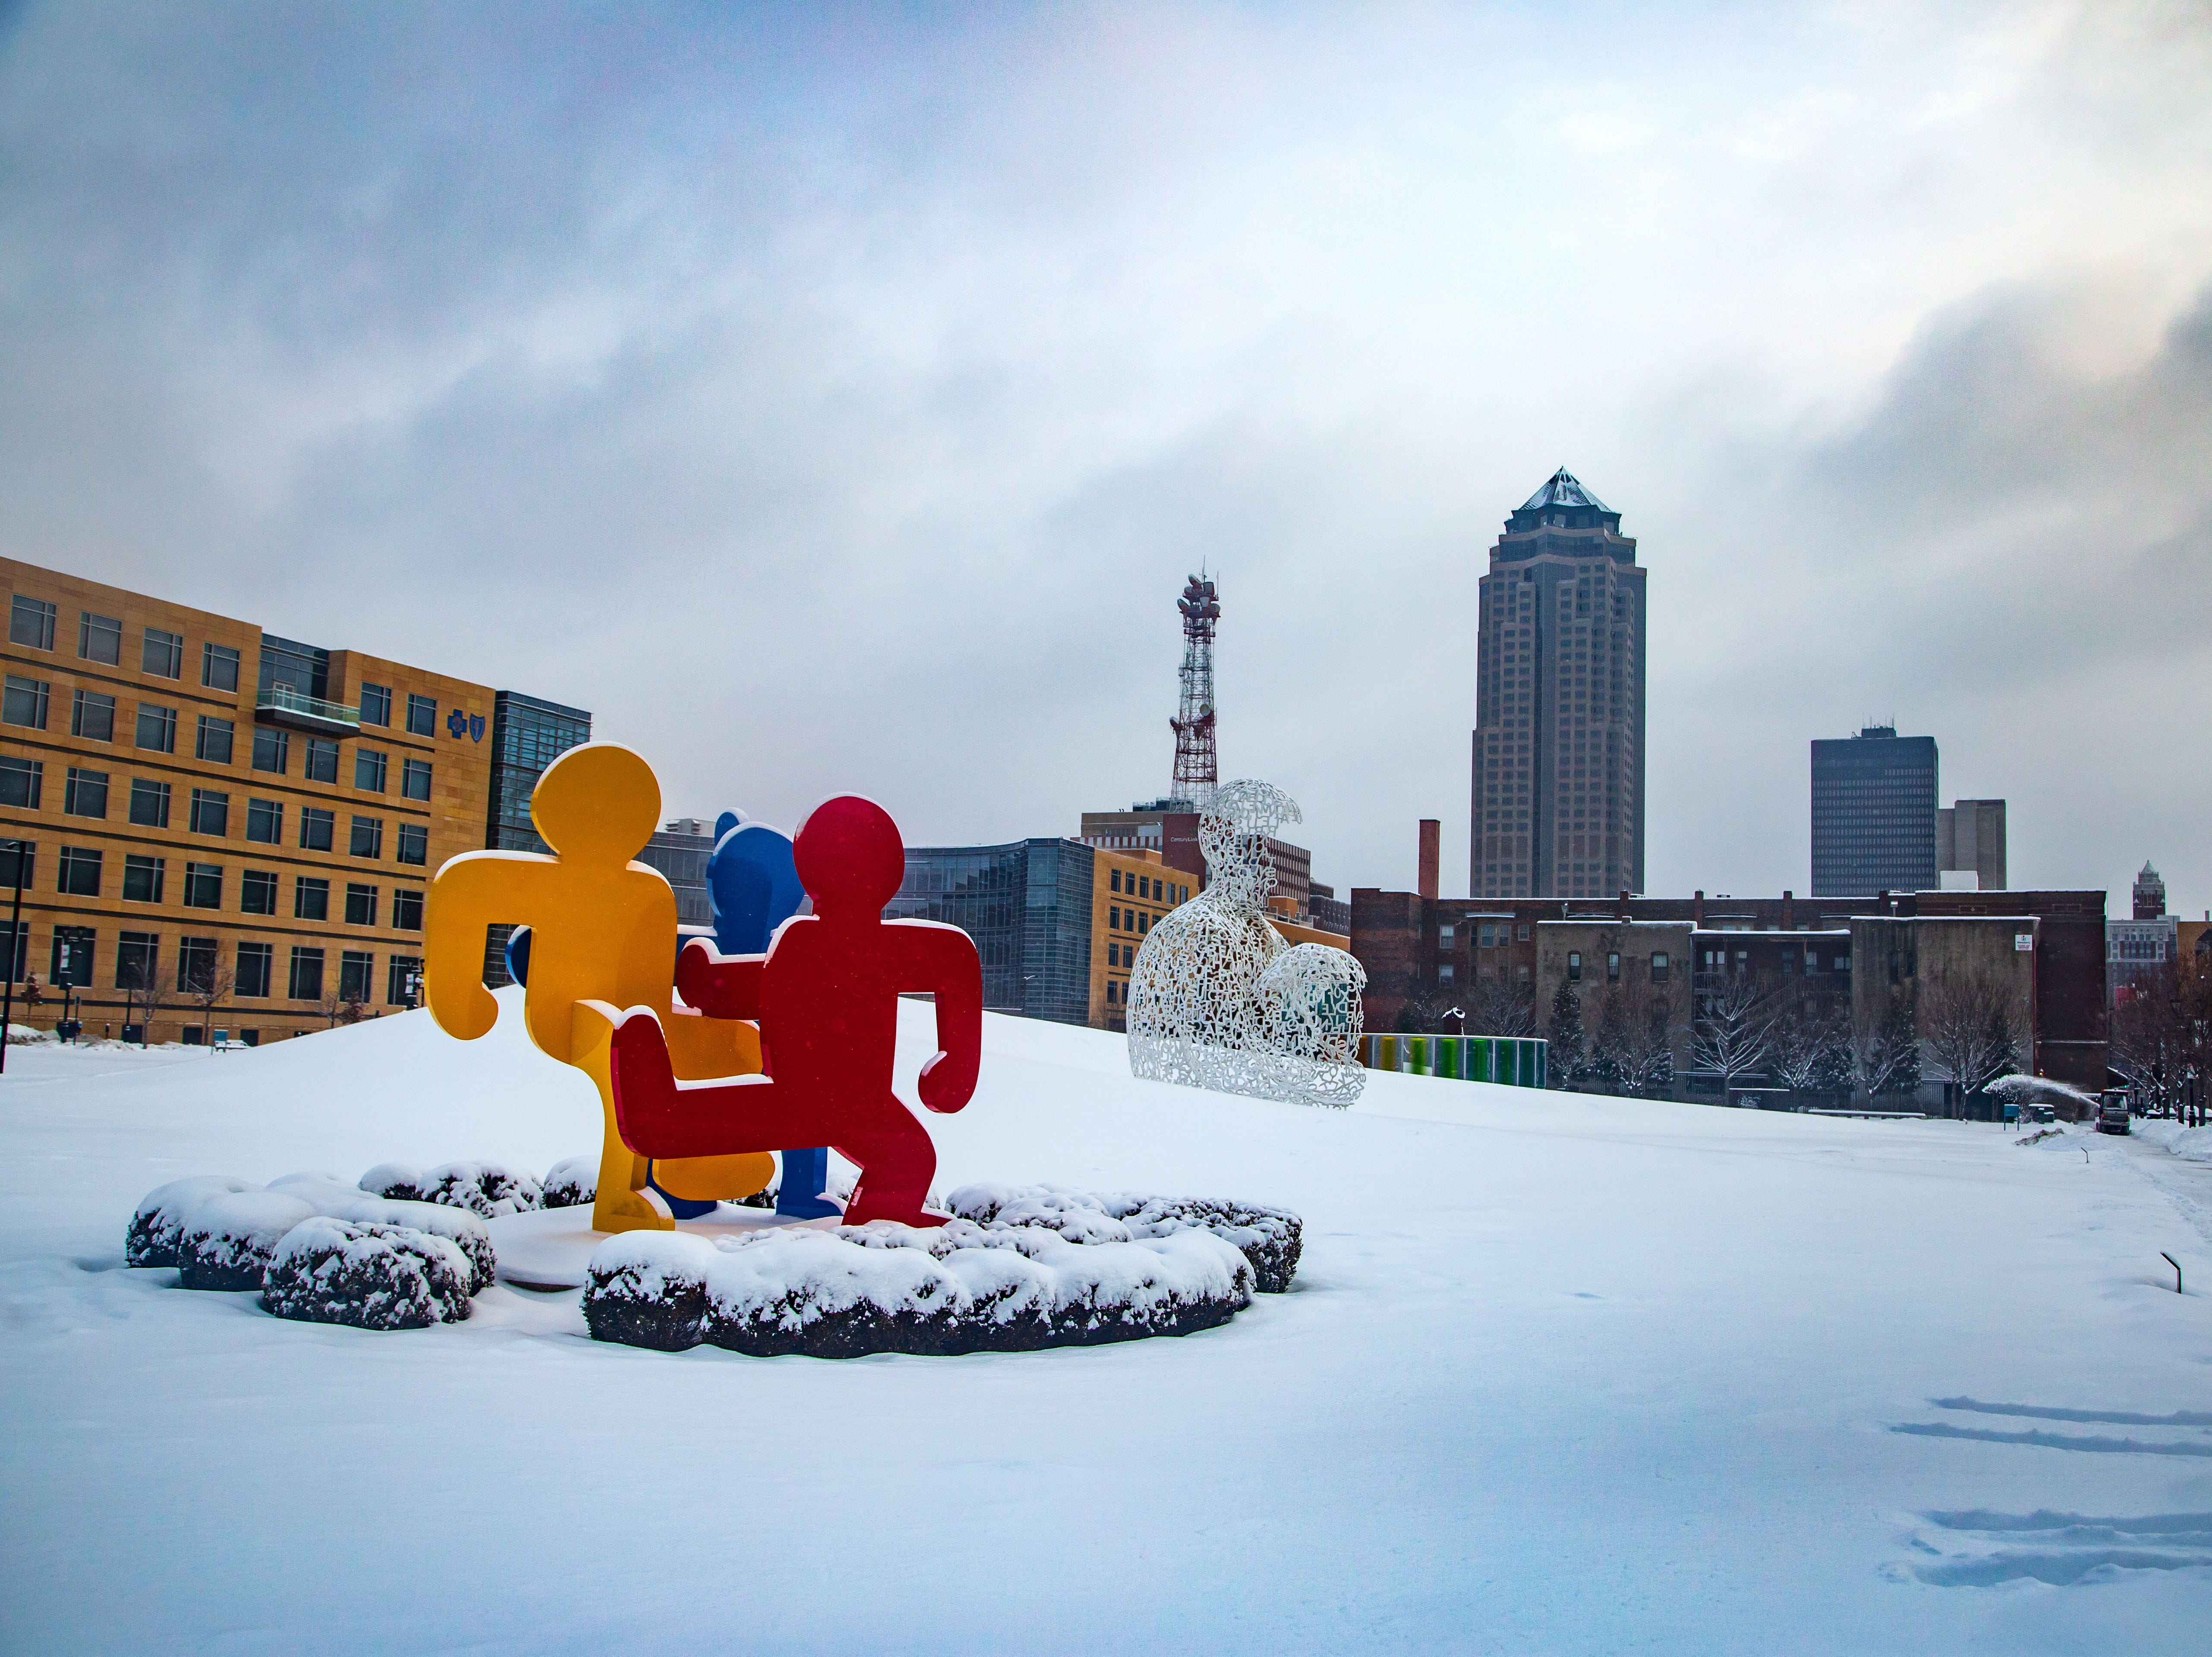 A fresh coat of snow blankets the Pappajohn Sculpture Park Tuesday, Feb. 12, 2019.